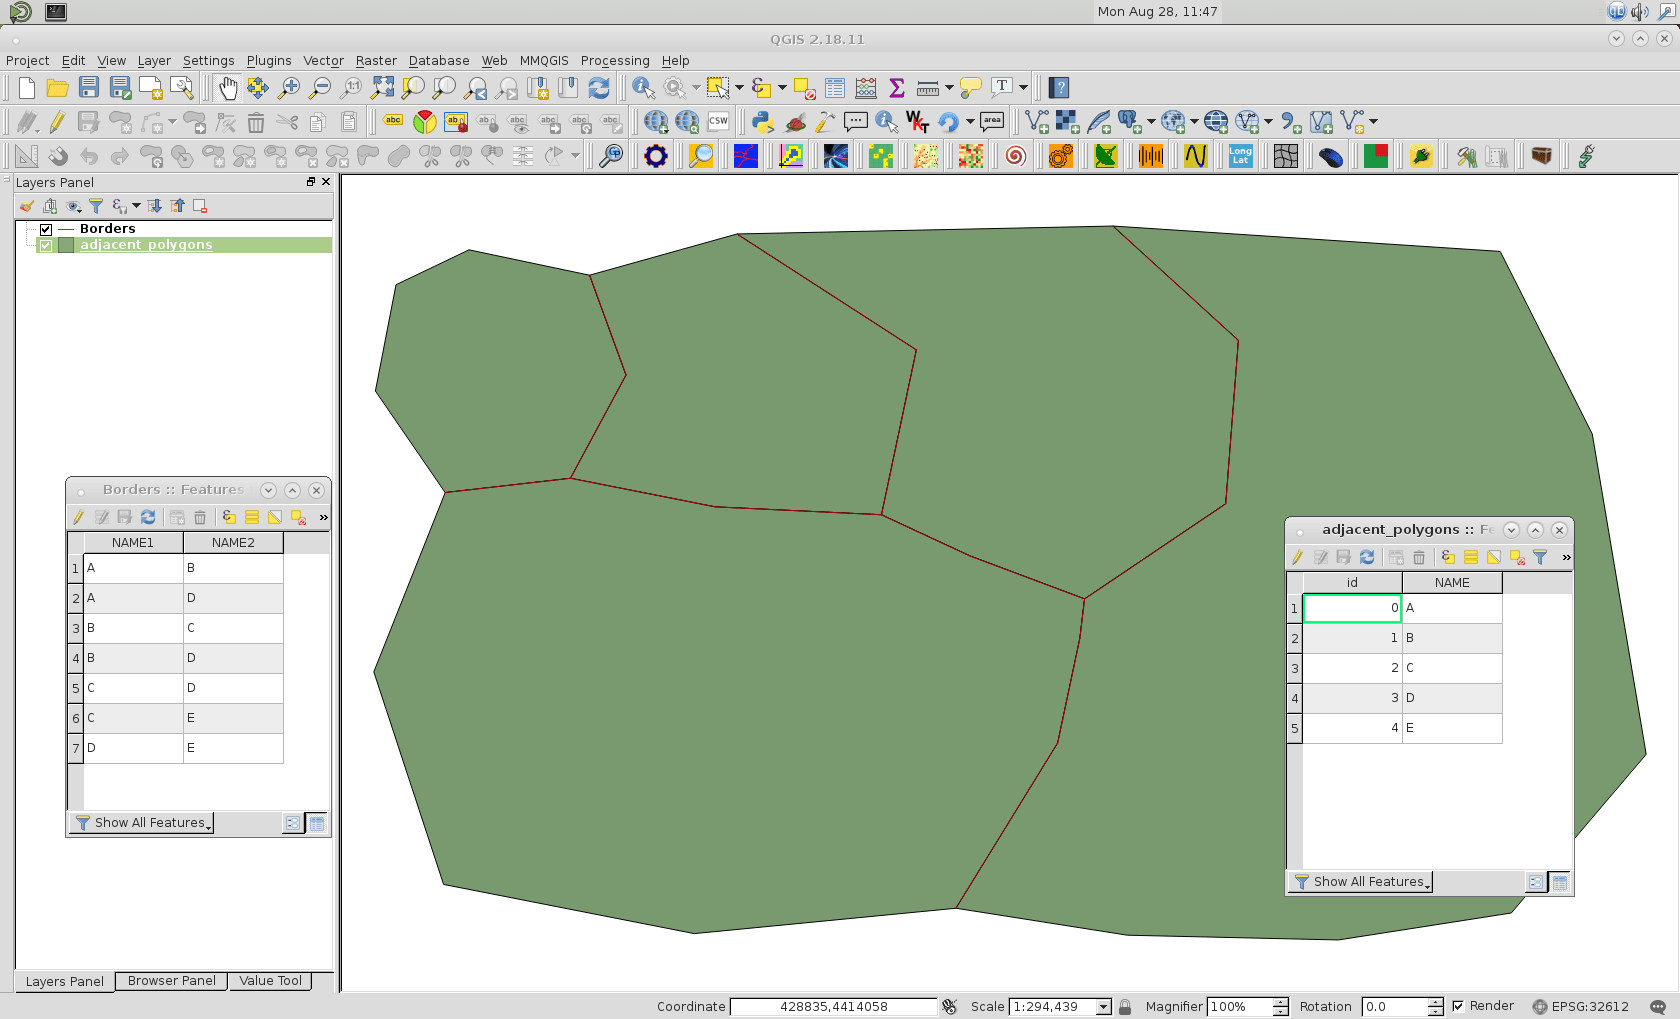 Adding Attributes For Polygons To Vector Layer With